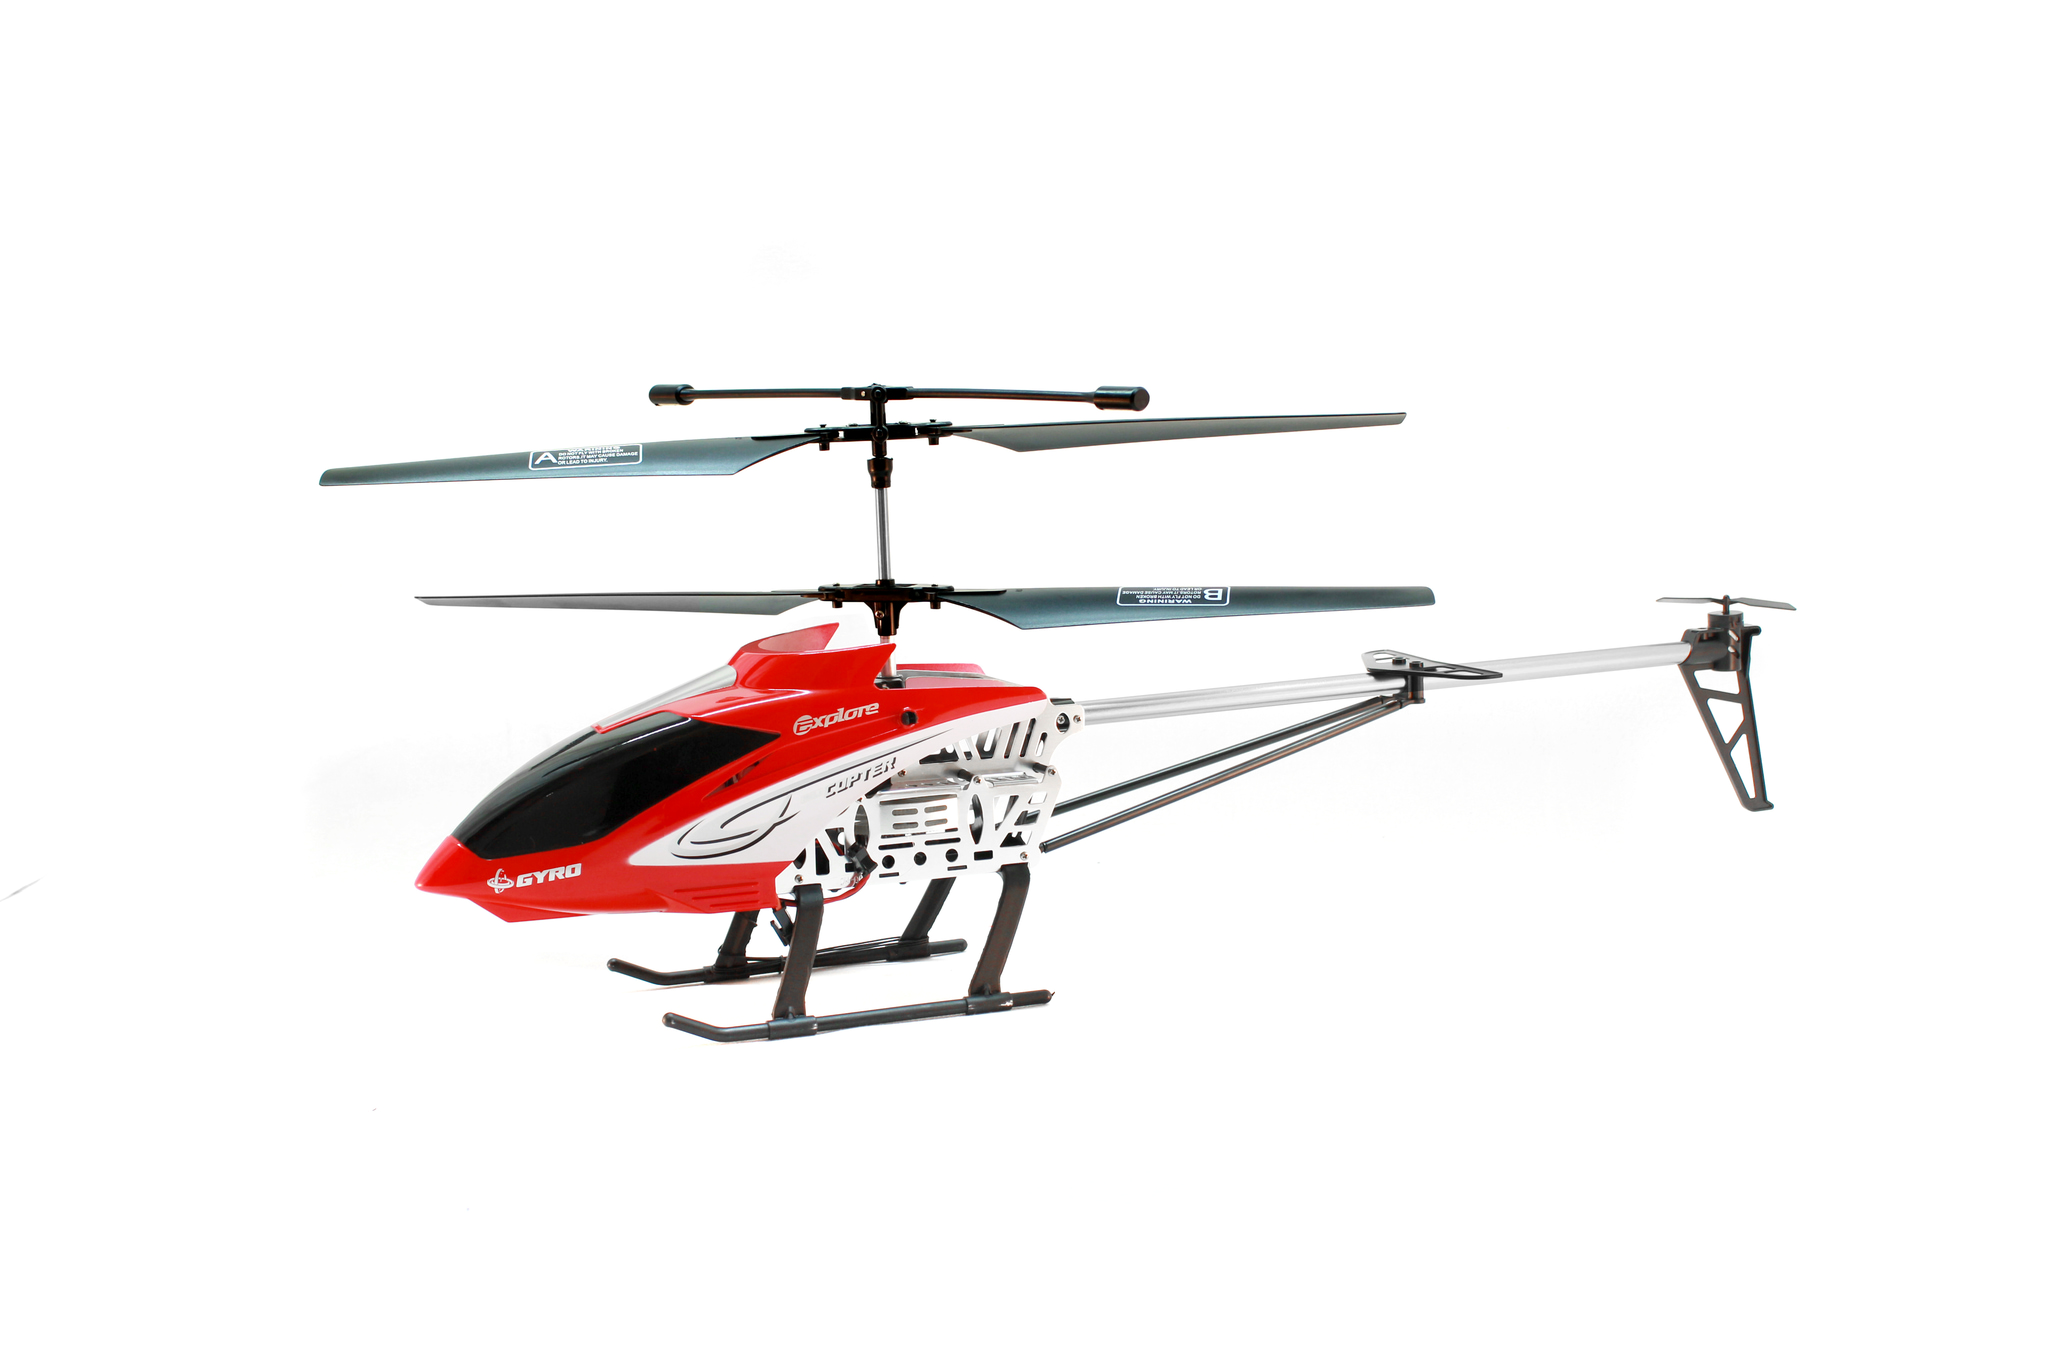 HobbyMall - RC Helicopter 3.5 Channel HBR 4